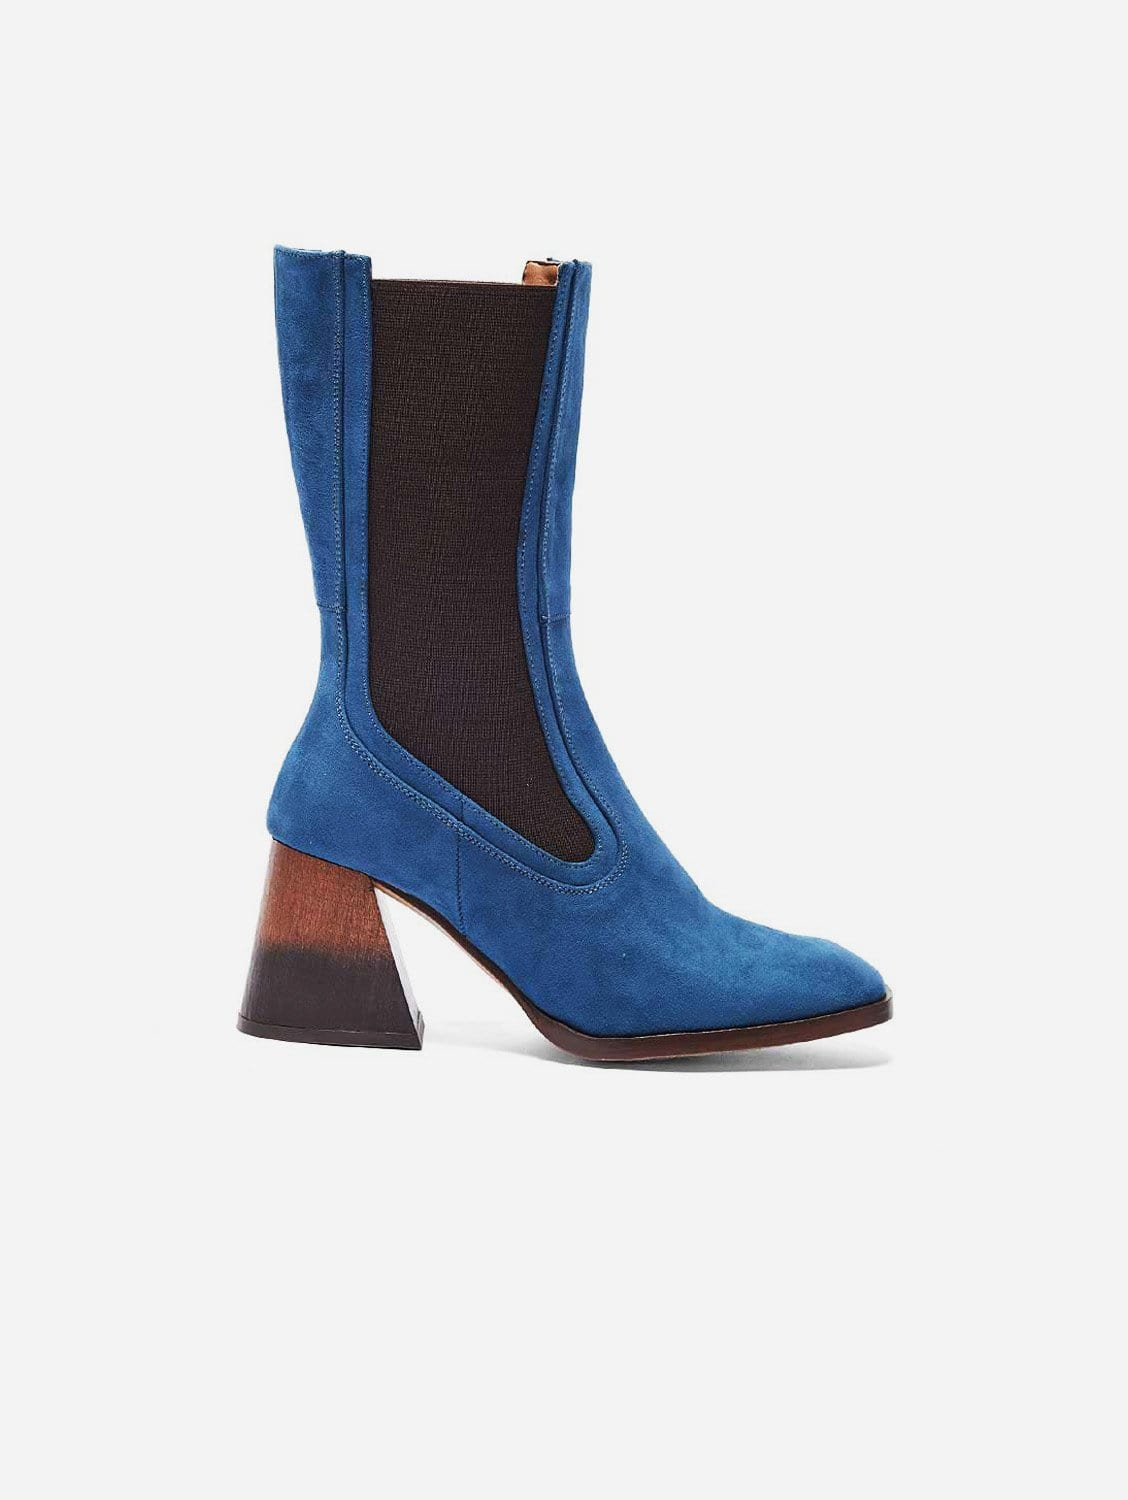 Lola Recycled Polyester Vegan Suede Boots   Blue